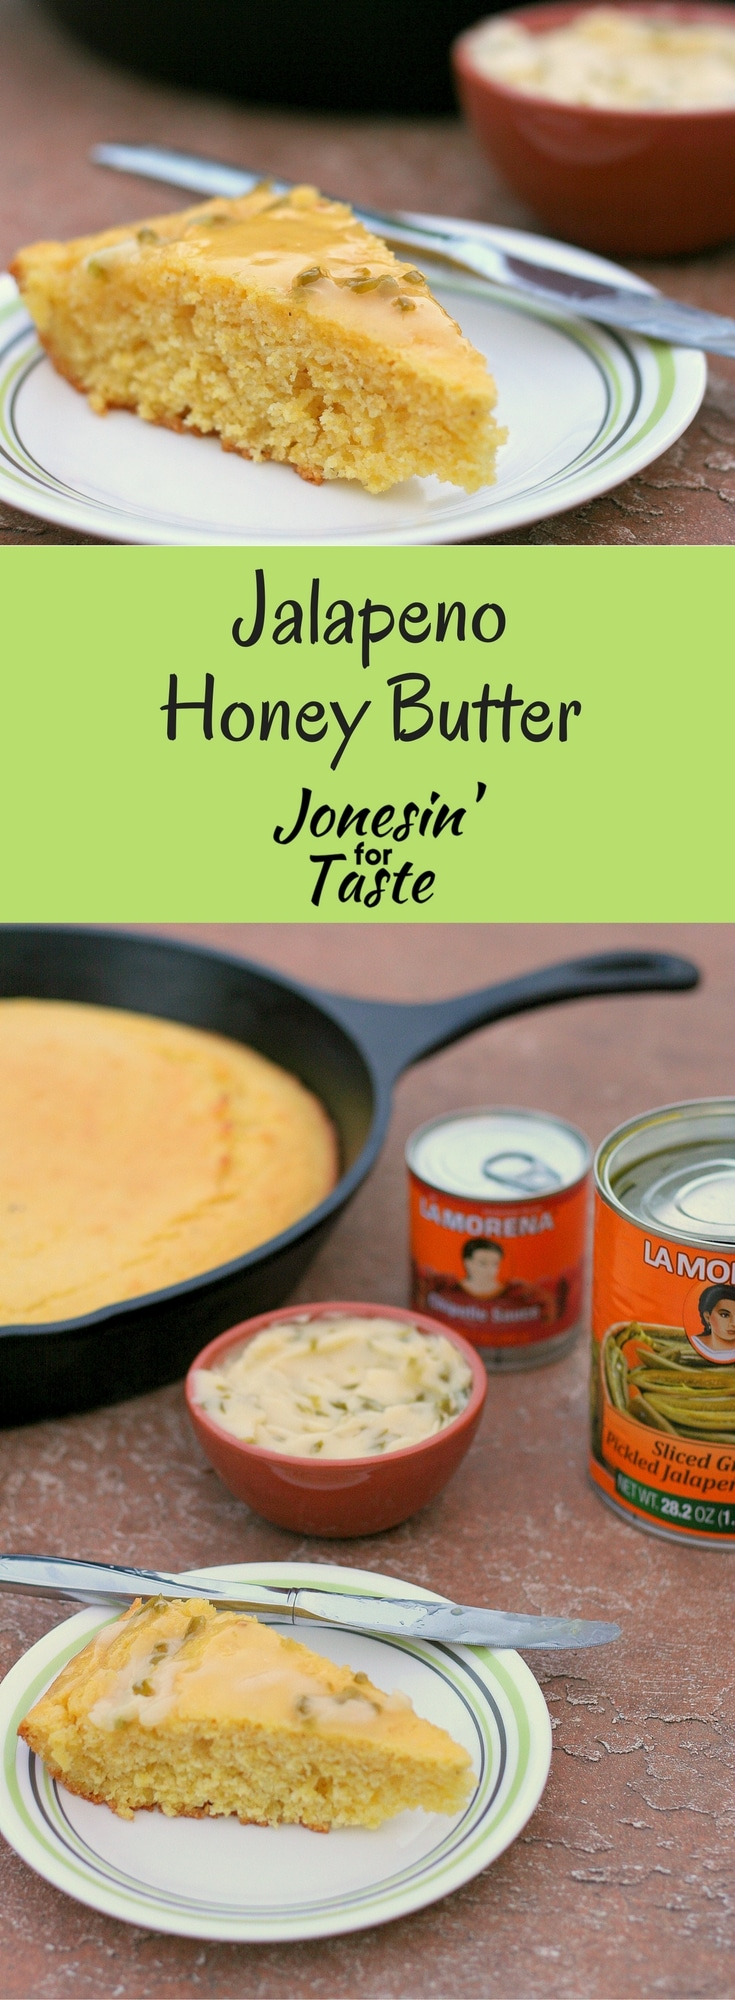 Jalapeno Honey Butter is a classic side dish reinvented using 3 simple ingredients with a new kick that whips up in a flash.  #ad #VivaLaMorena #CollectiveBias